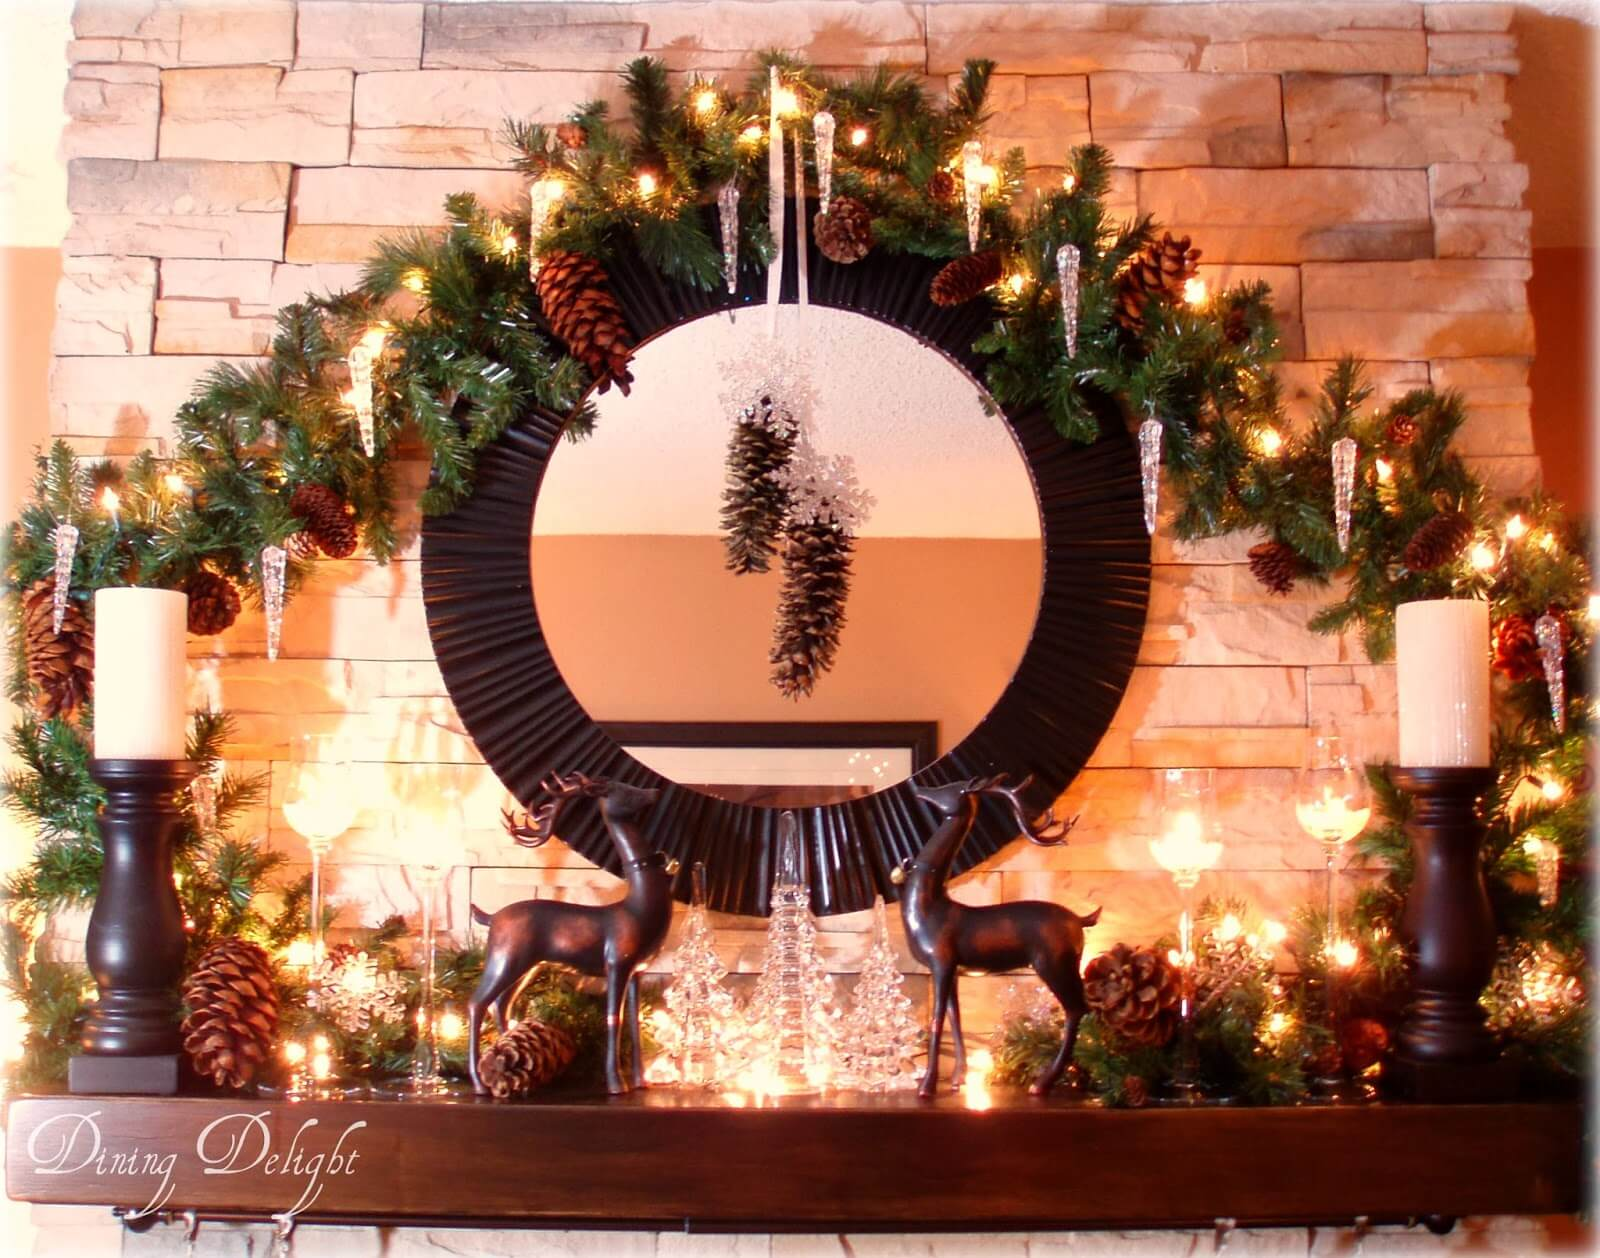 Transform Your Hearth with Pinecone Decor